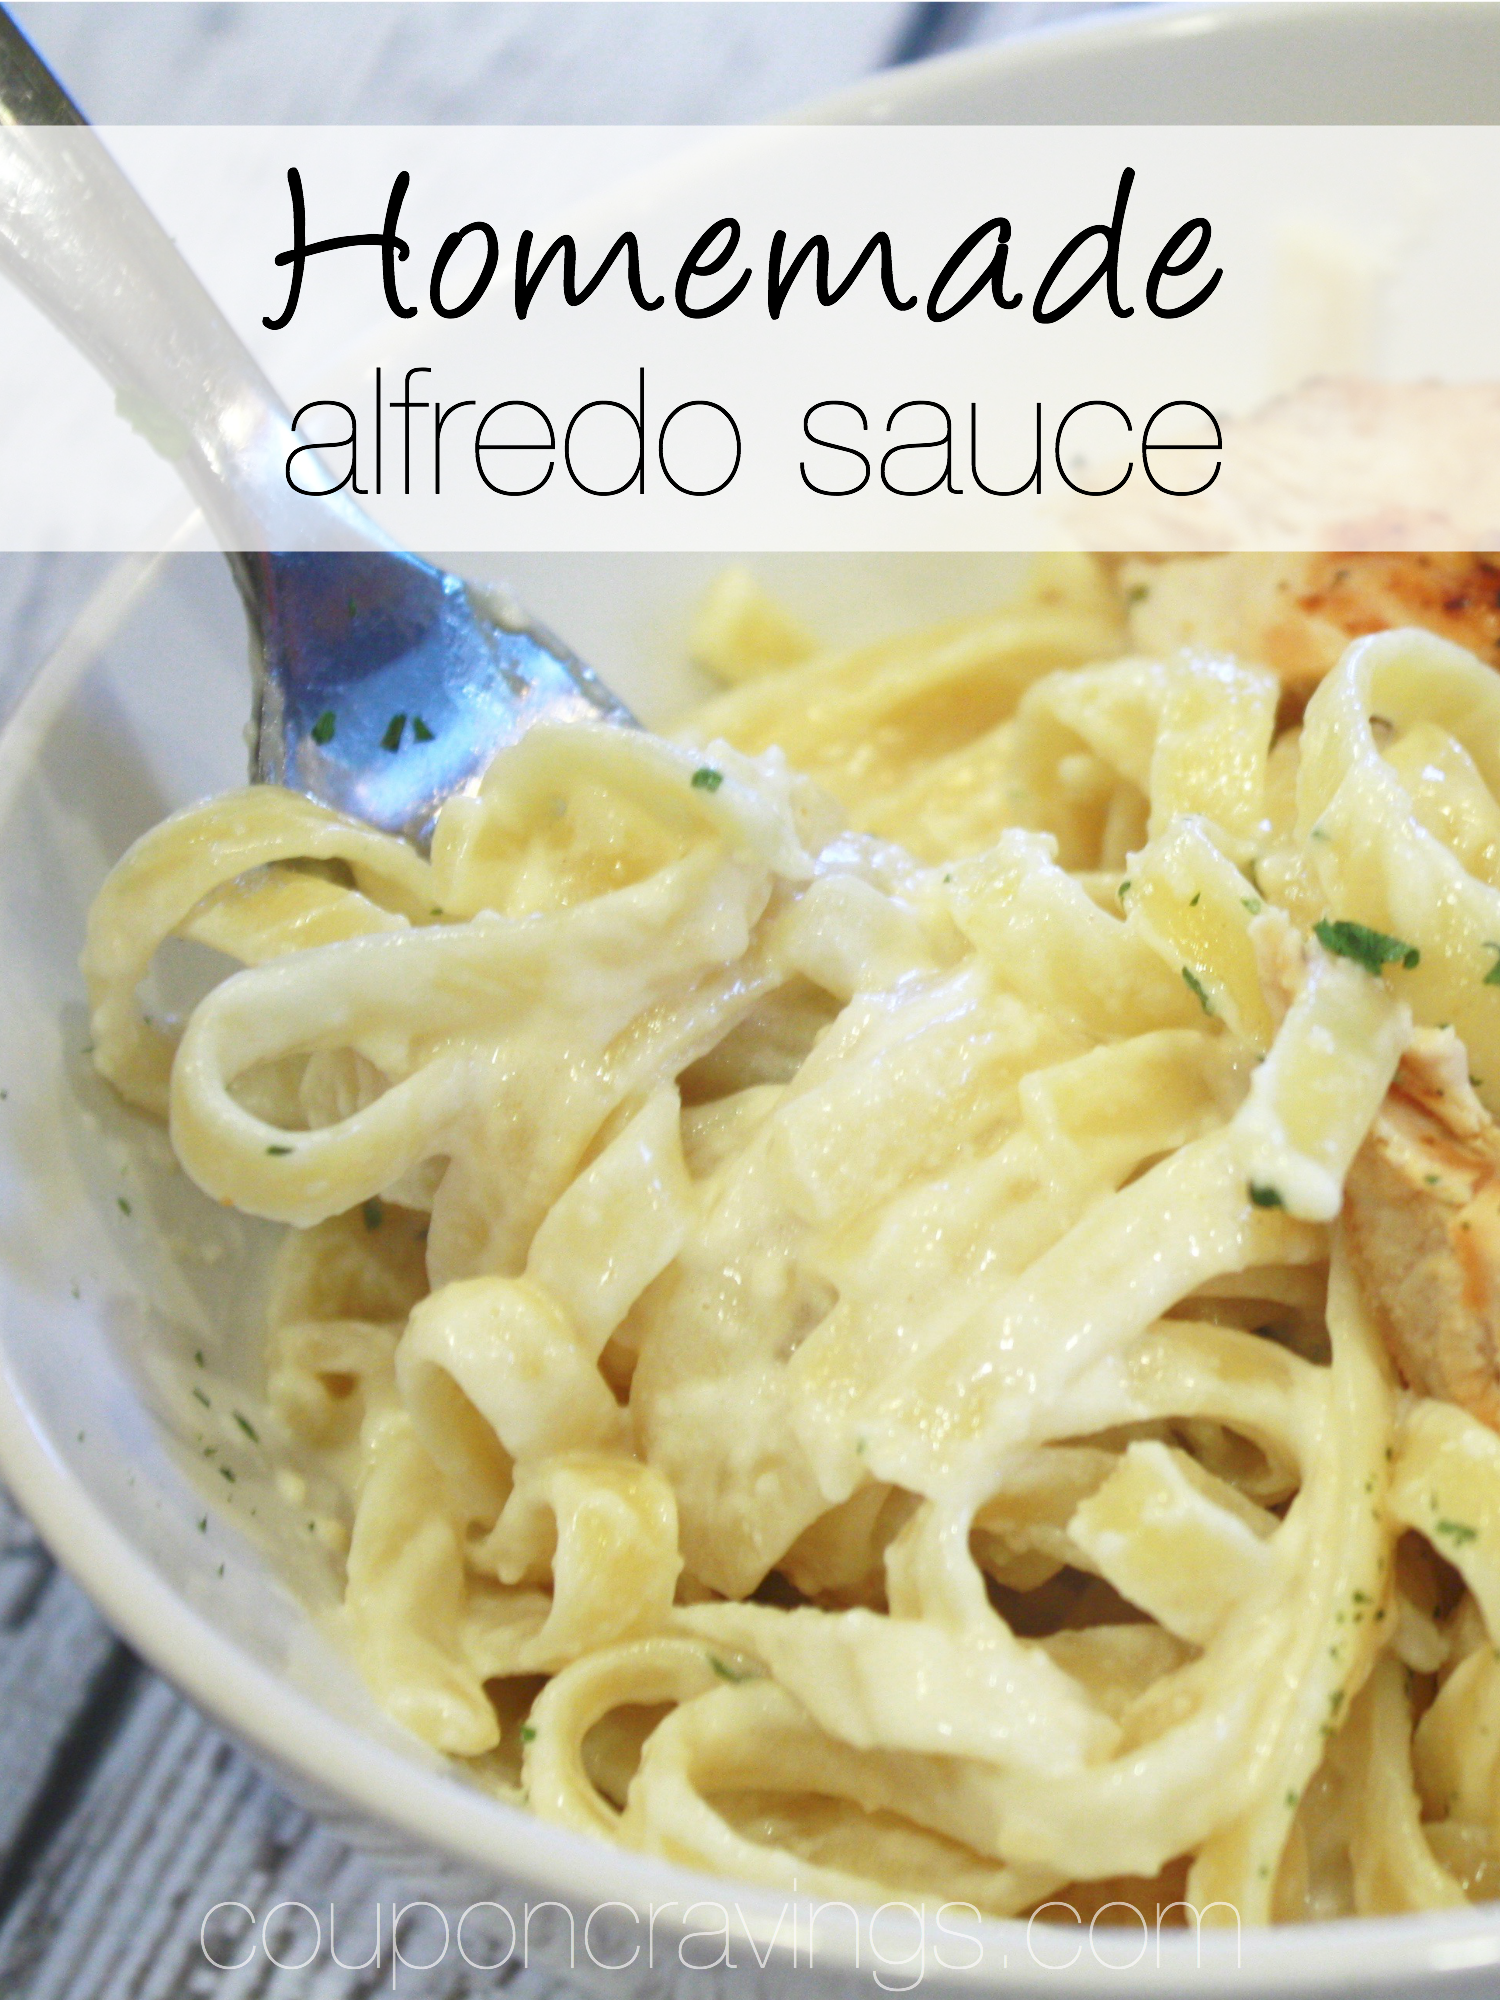 Pin By Debby Fernandez On Recipes In 2019 Pinterest Recipes Pasta And Alfredo Sauce